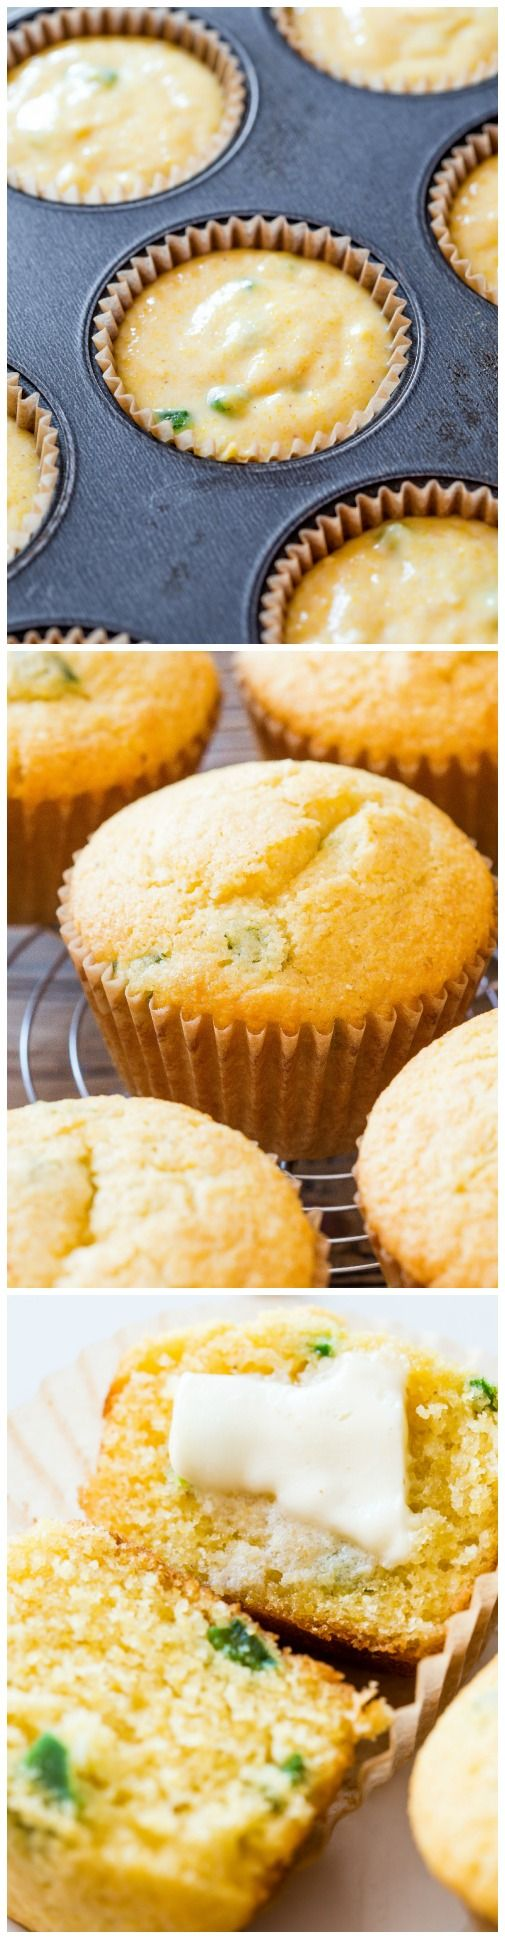 A little sweet, a little spicy! One of my new favorite muffin recipes.